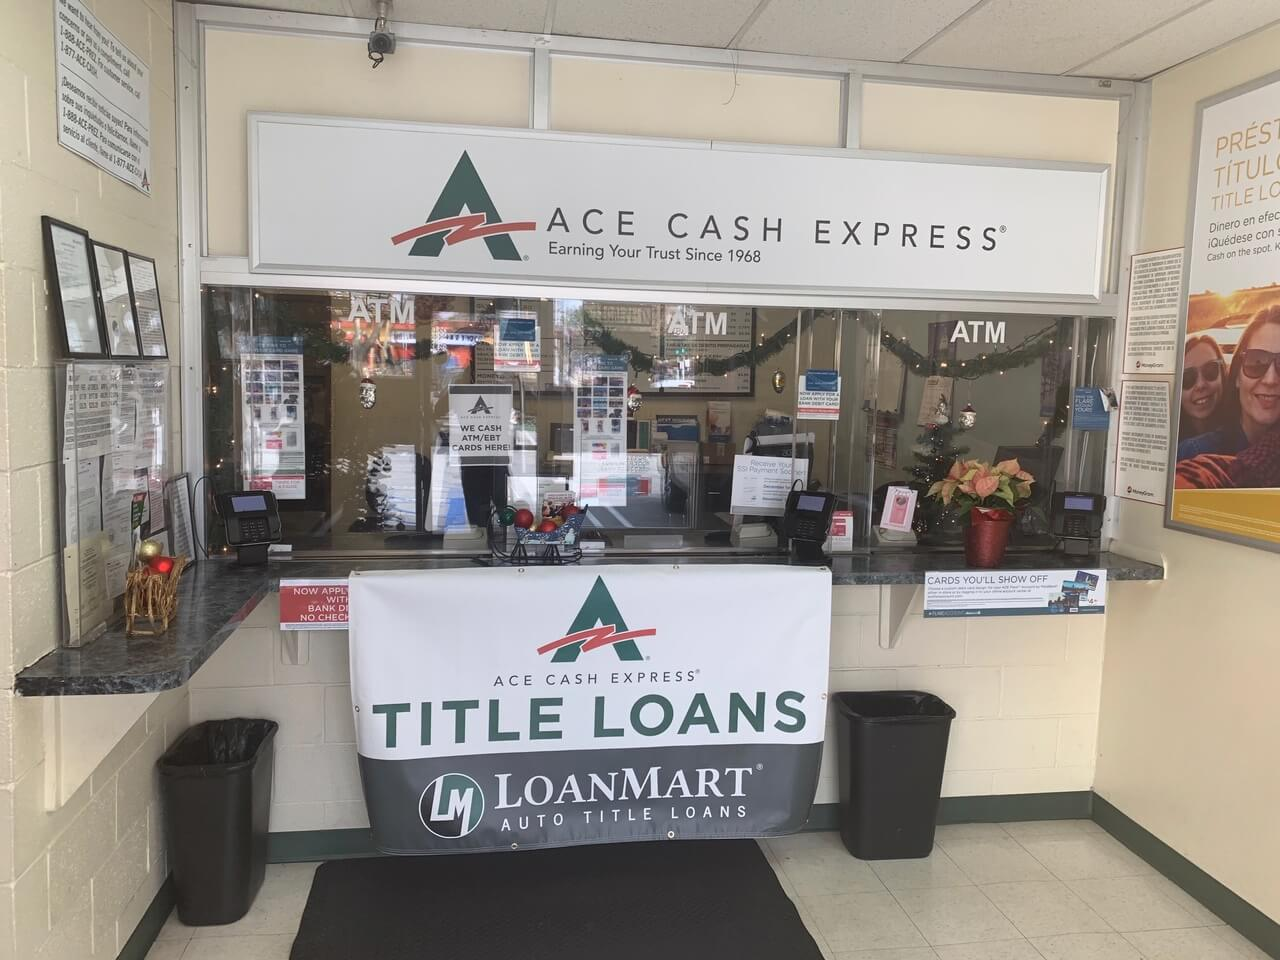 LoanMart Title Loans at ACE Cash Express image 4